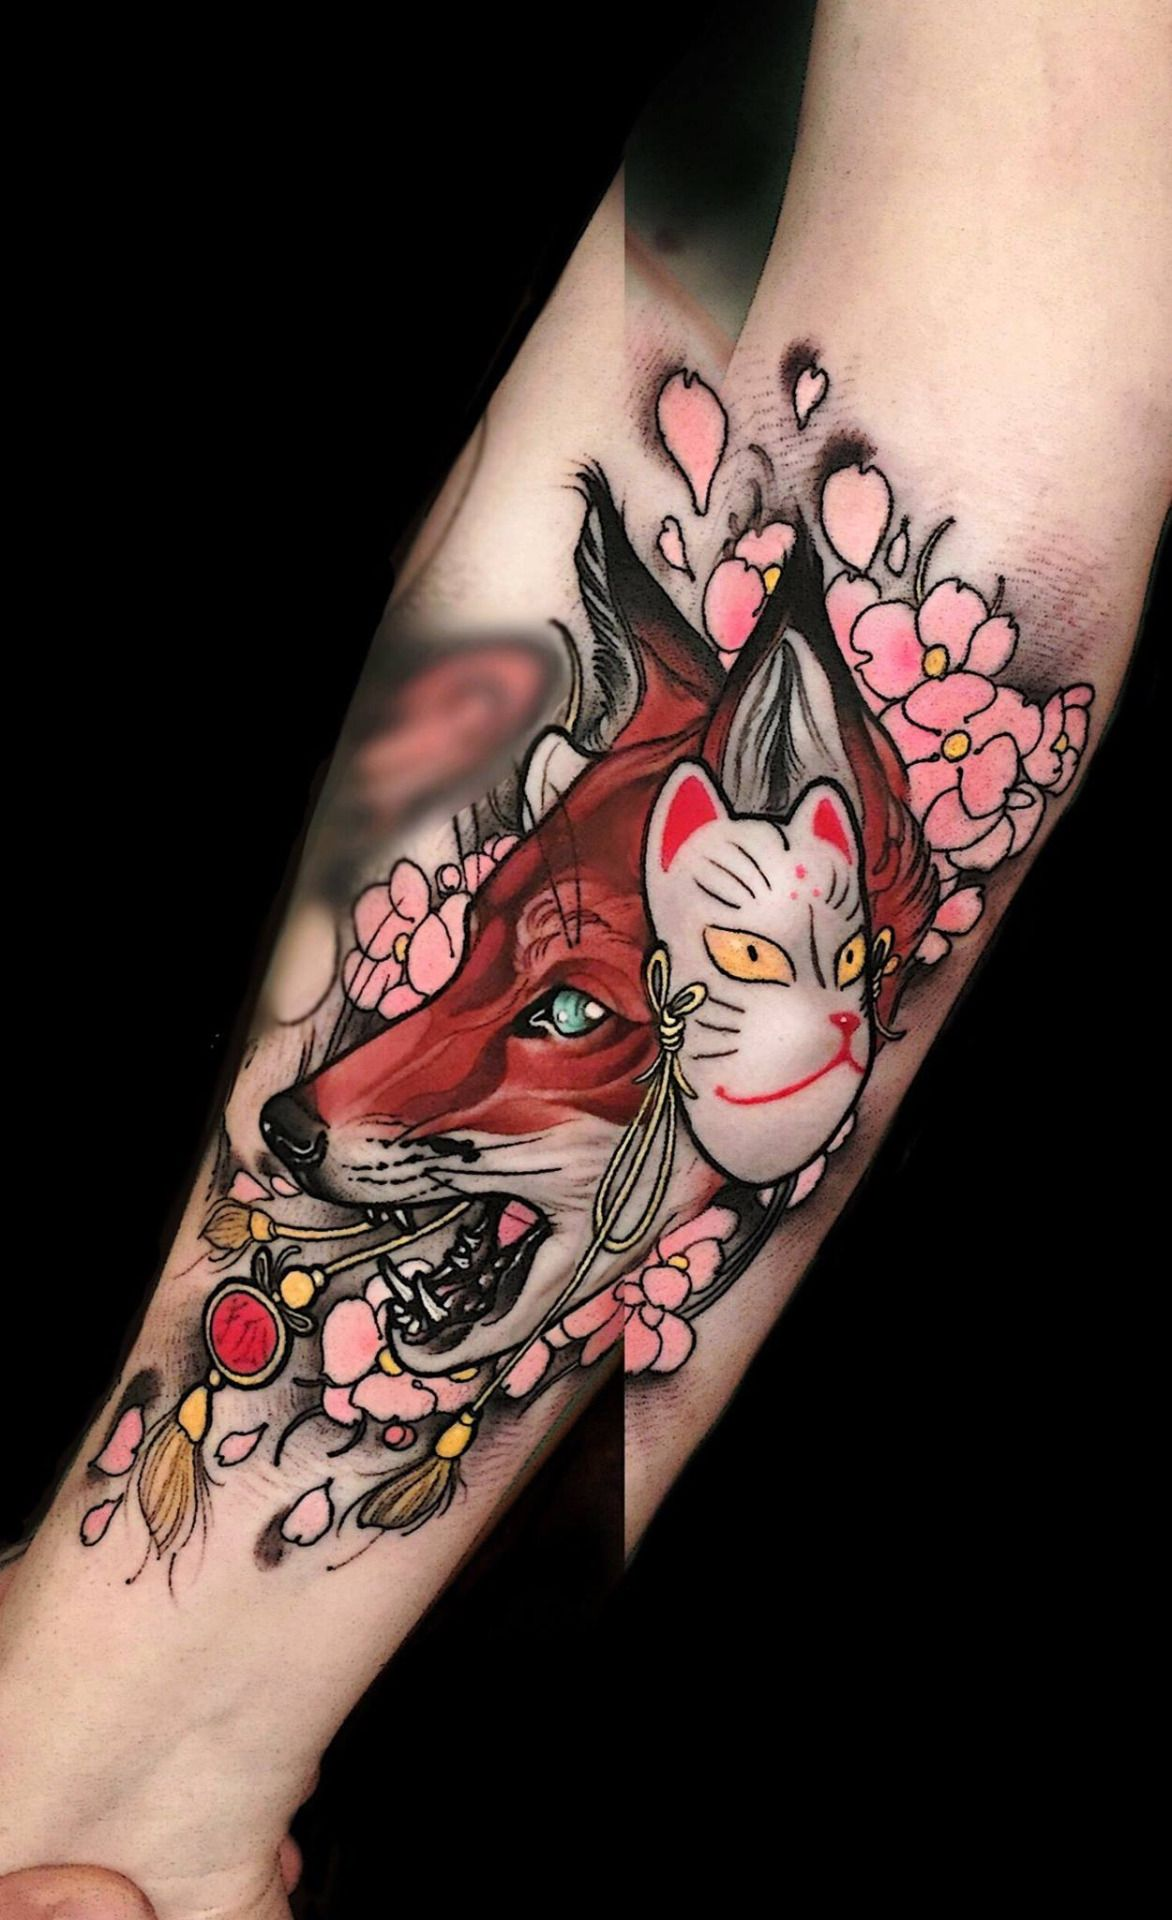 Brando Chiesa If I Ever End Up Going To Japan I Want To Get This As A Memory Tattoo